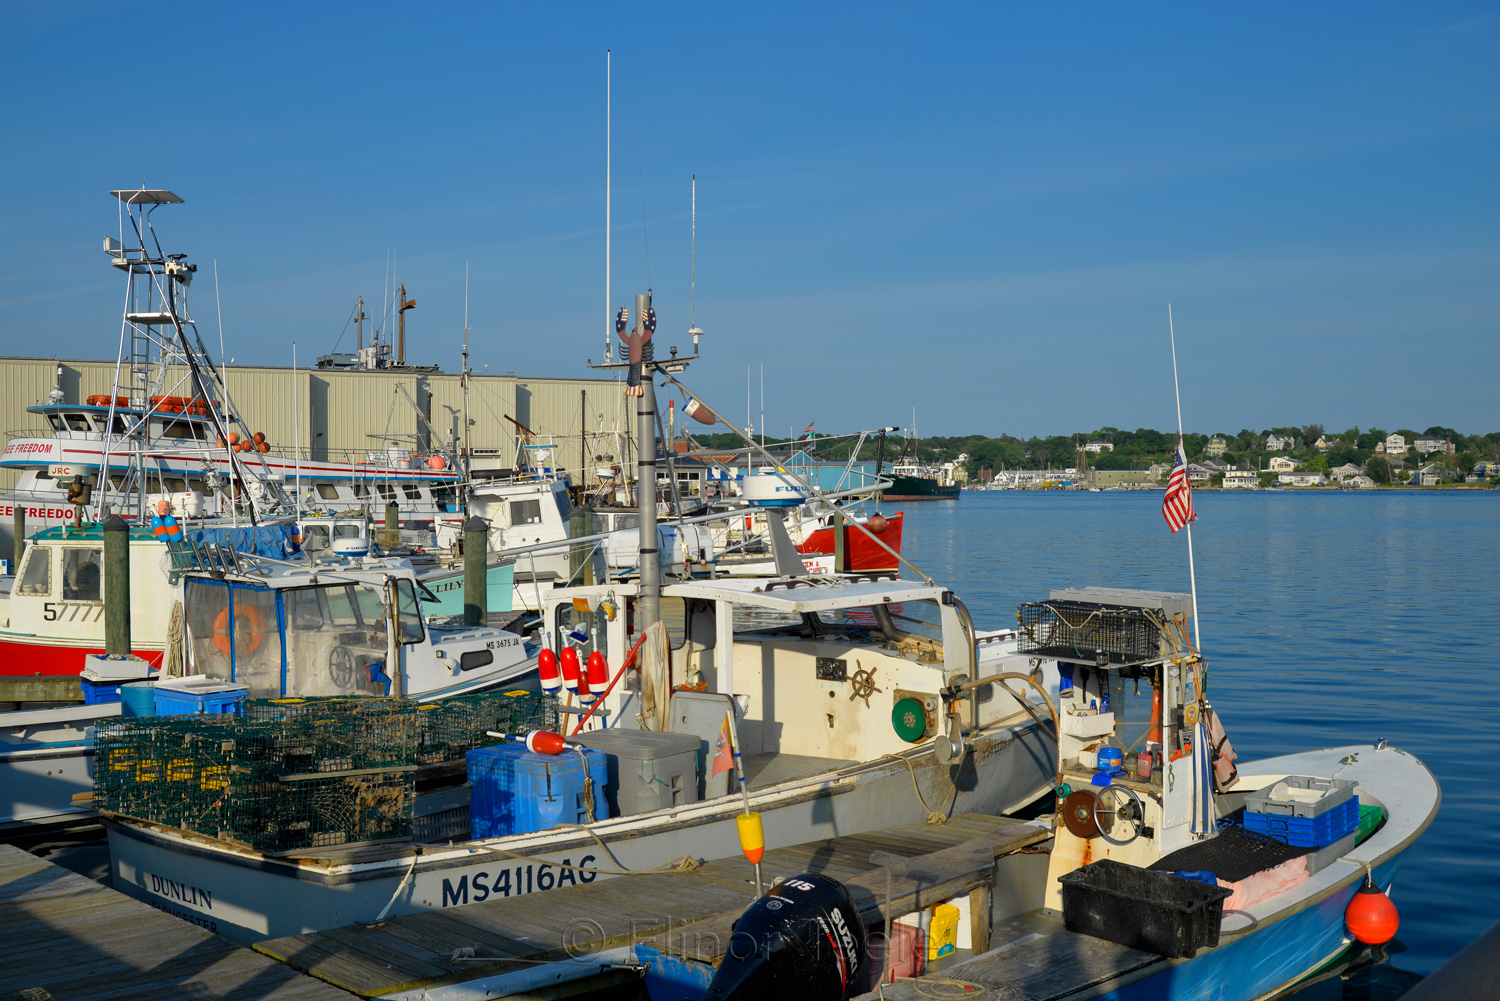 Gloucester Waterfront in July 4